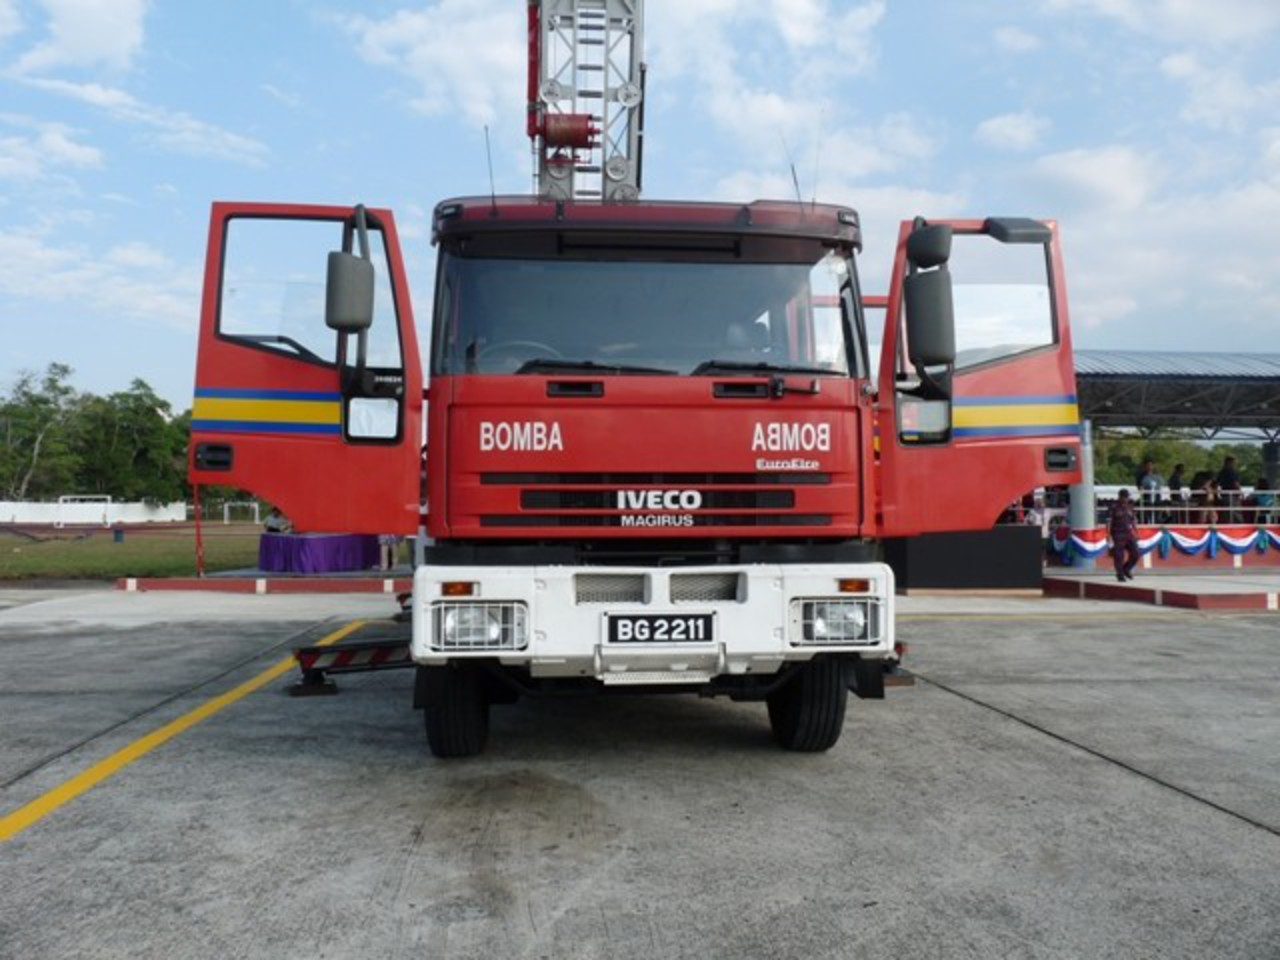 Iveco Eurofire/Magirus TTL2 front view. Front view of the Brunei Fire and